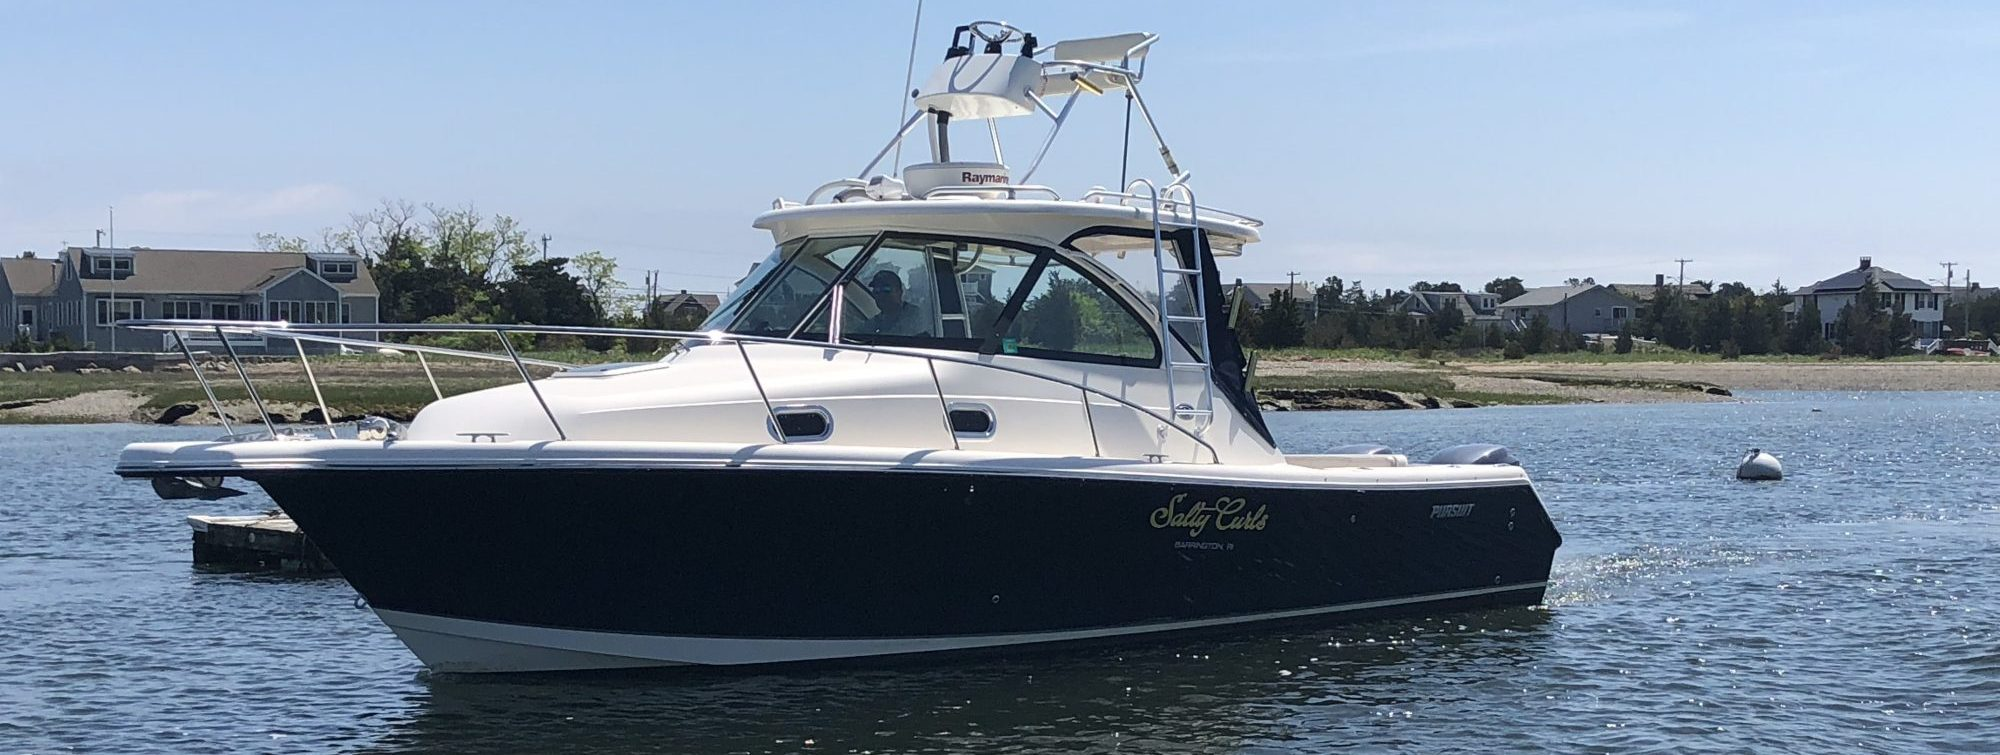 Pursuit saltwater fishing brokerage boat for sale